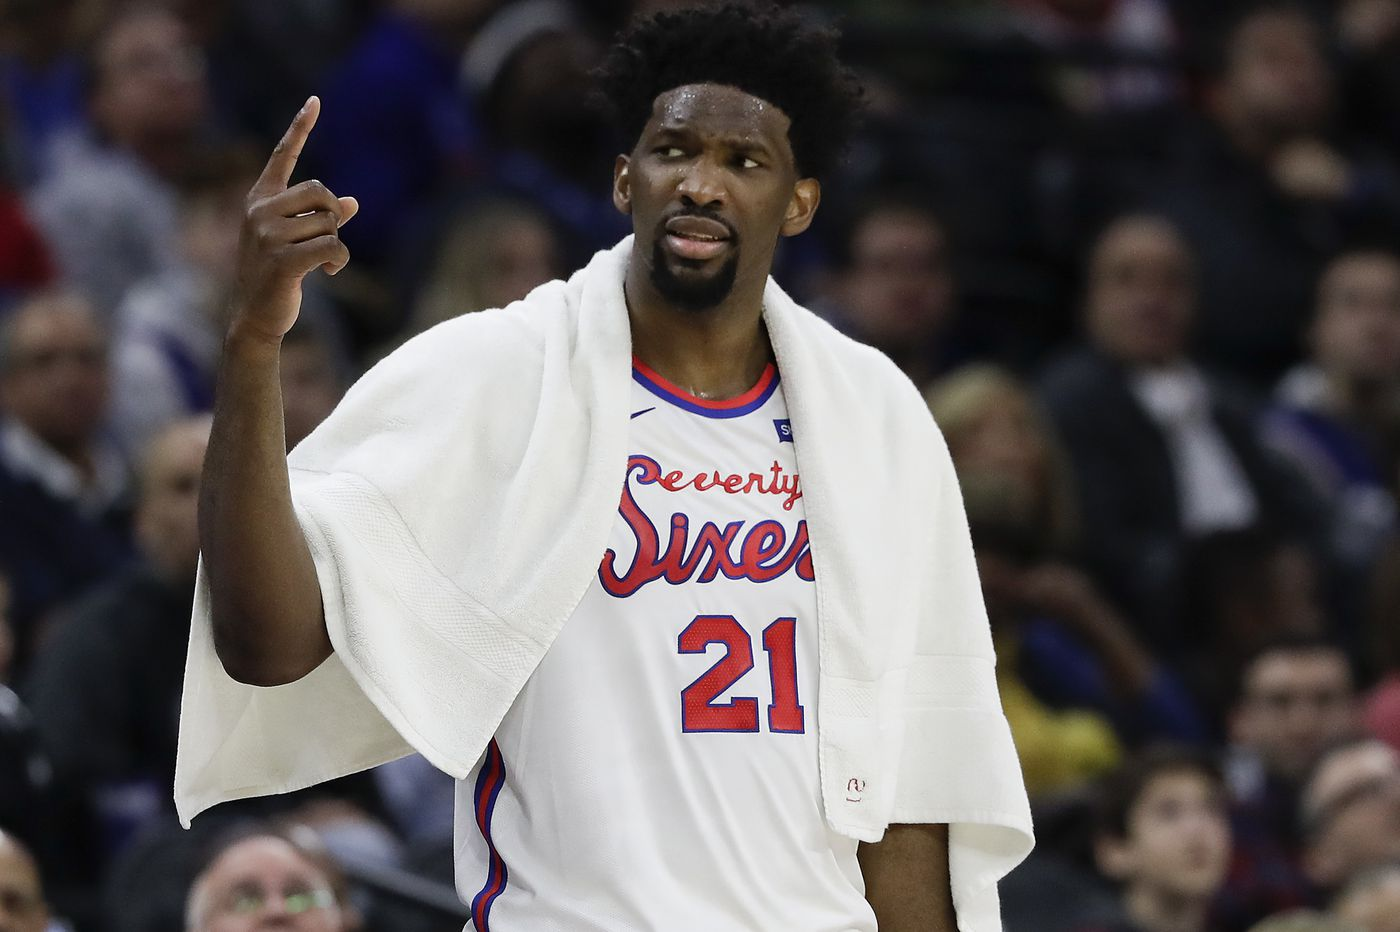 Forget the Sixers' trades and new lineups. Their playoffs fate depends on Joel Embiid and Ben Simmons. | Keith Pompey